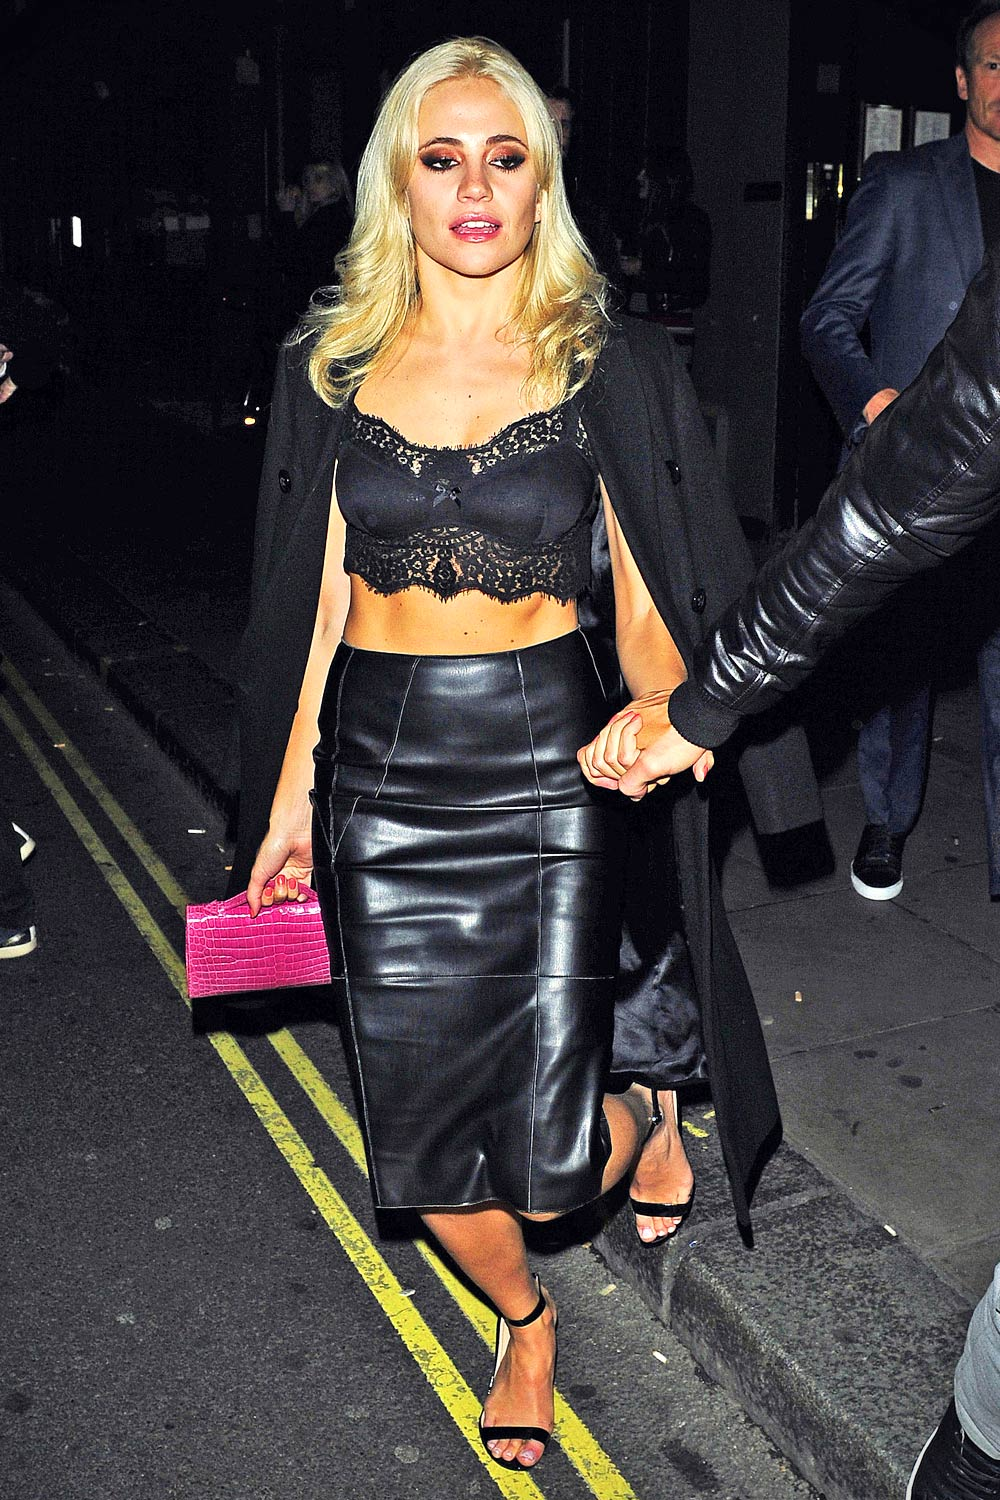 Pixie Lott Leaving The Carousel In London Leather